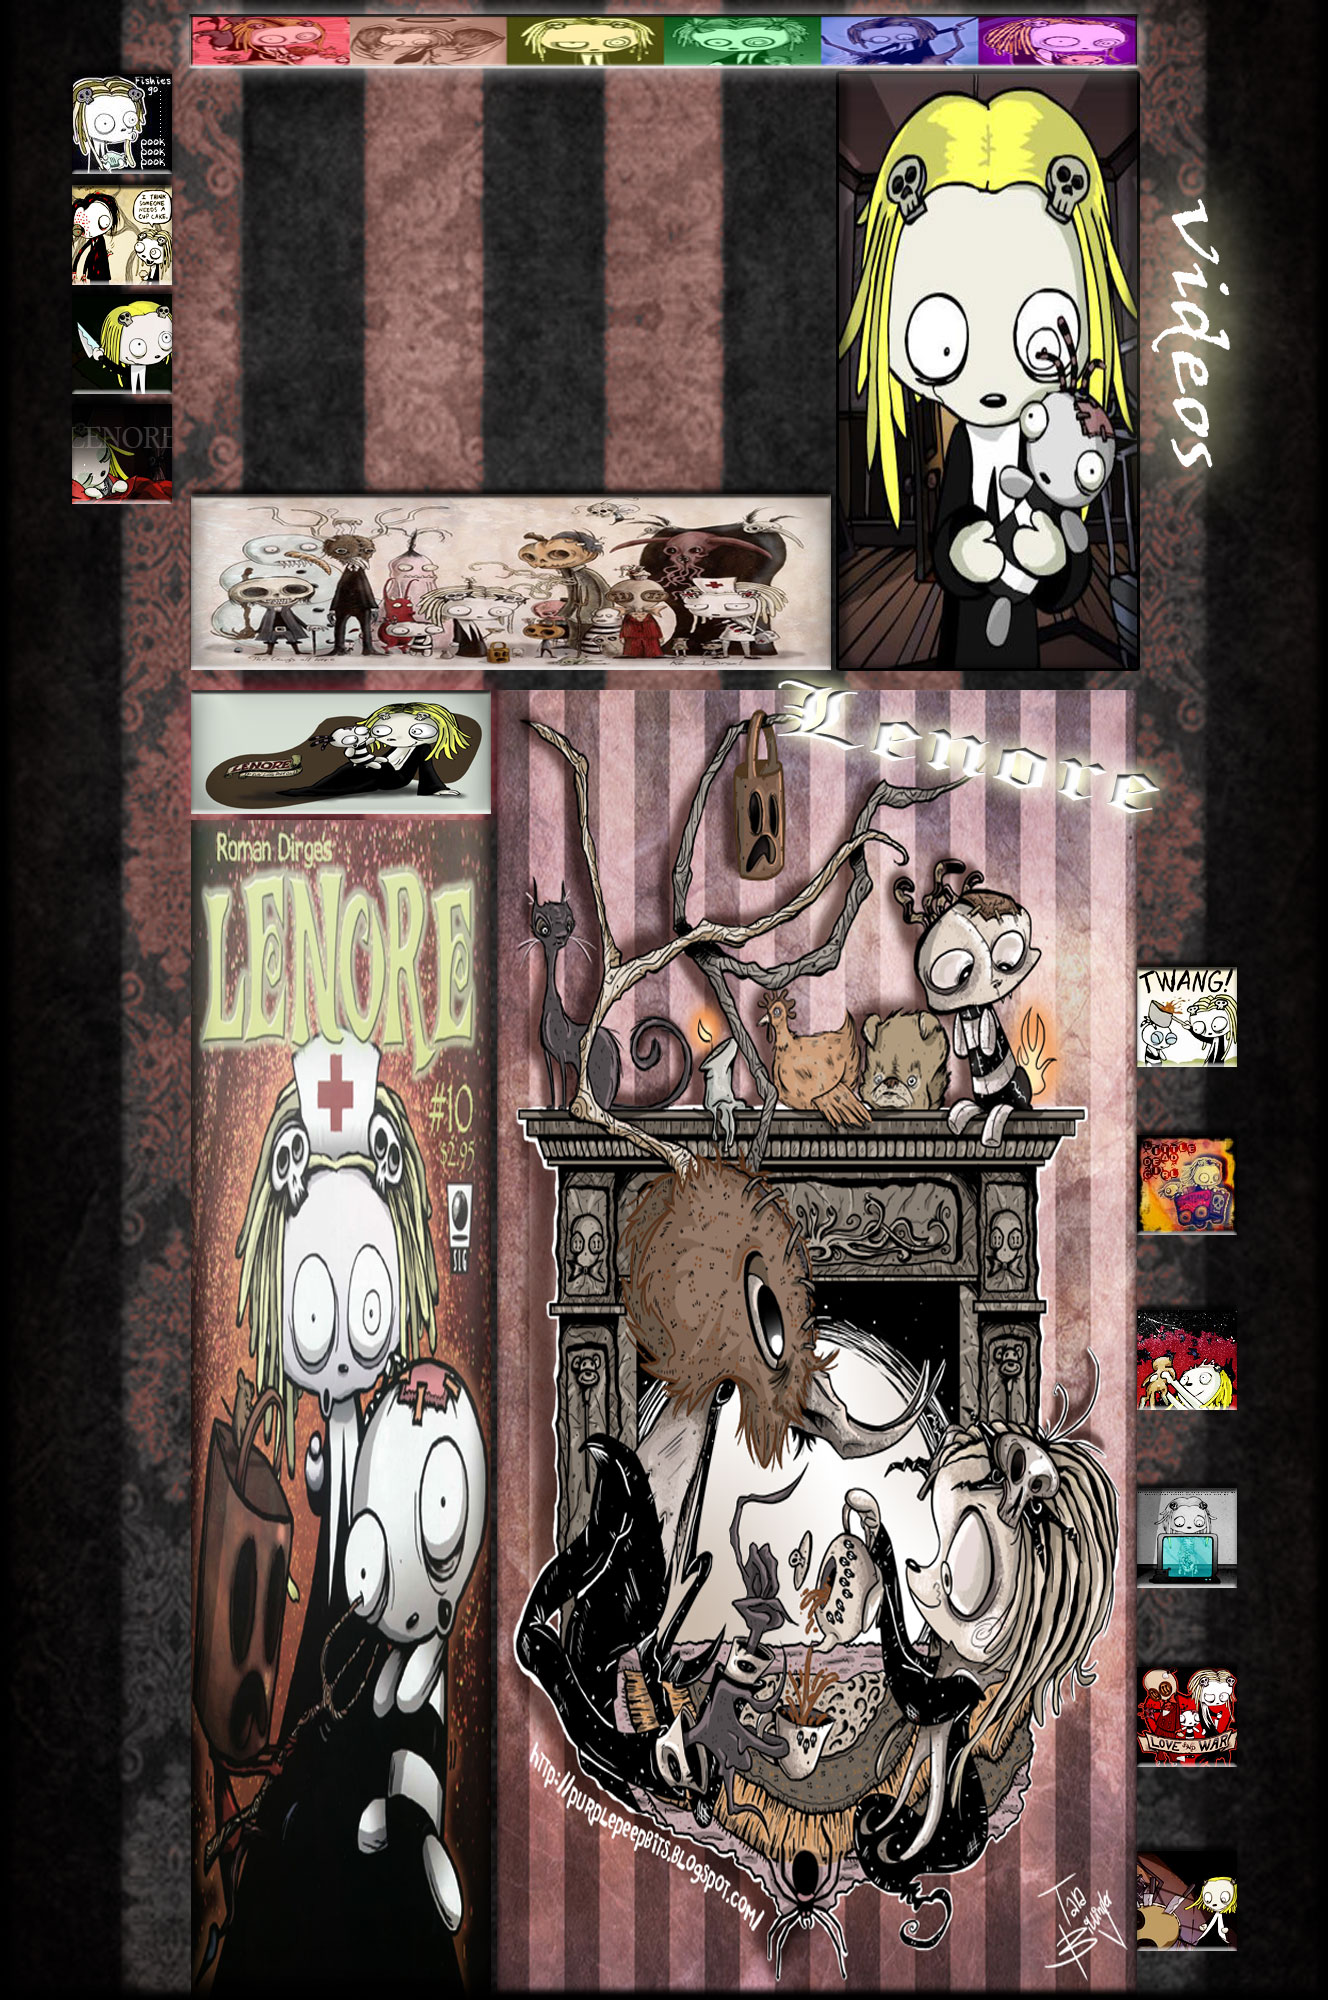 lenore yt by xxclairestrifexx fan art wallpaper movies tv 2011 2014 ...